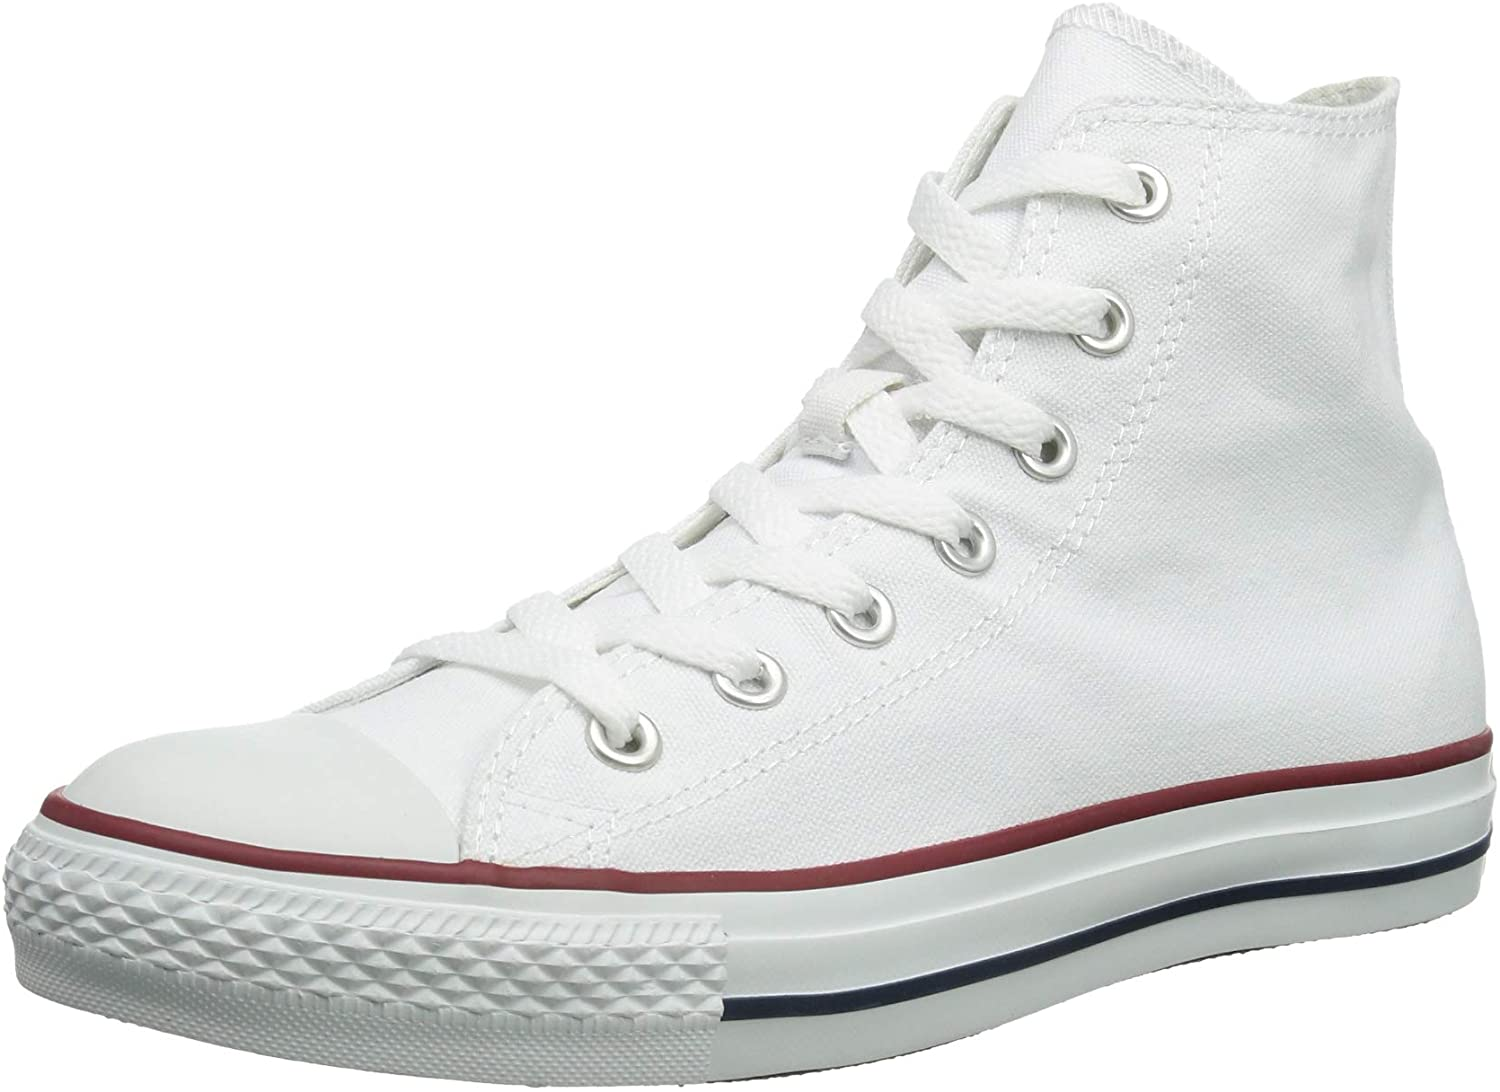 Add a retro staple to your style with the iconic silhouette of the Converse Chuck Taylor All Star '70 Hi sneakers